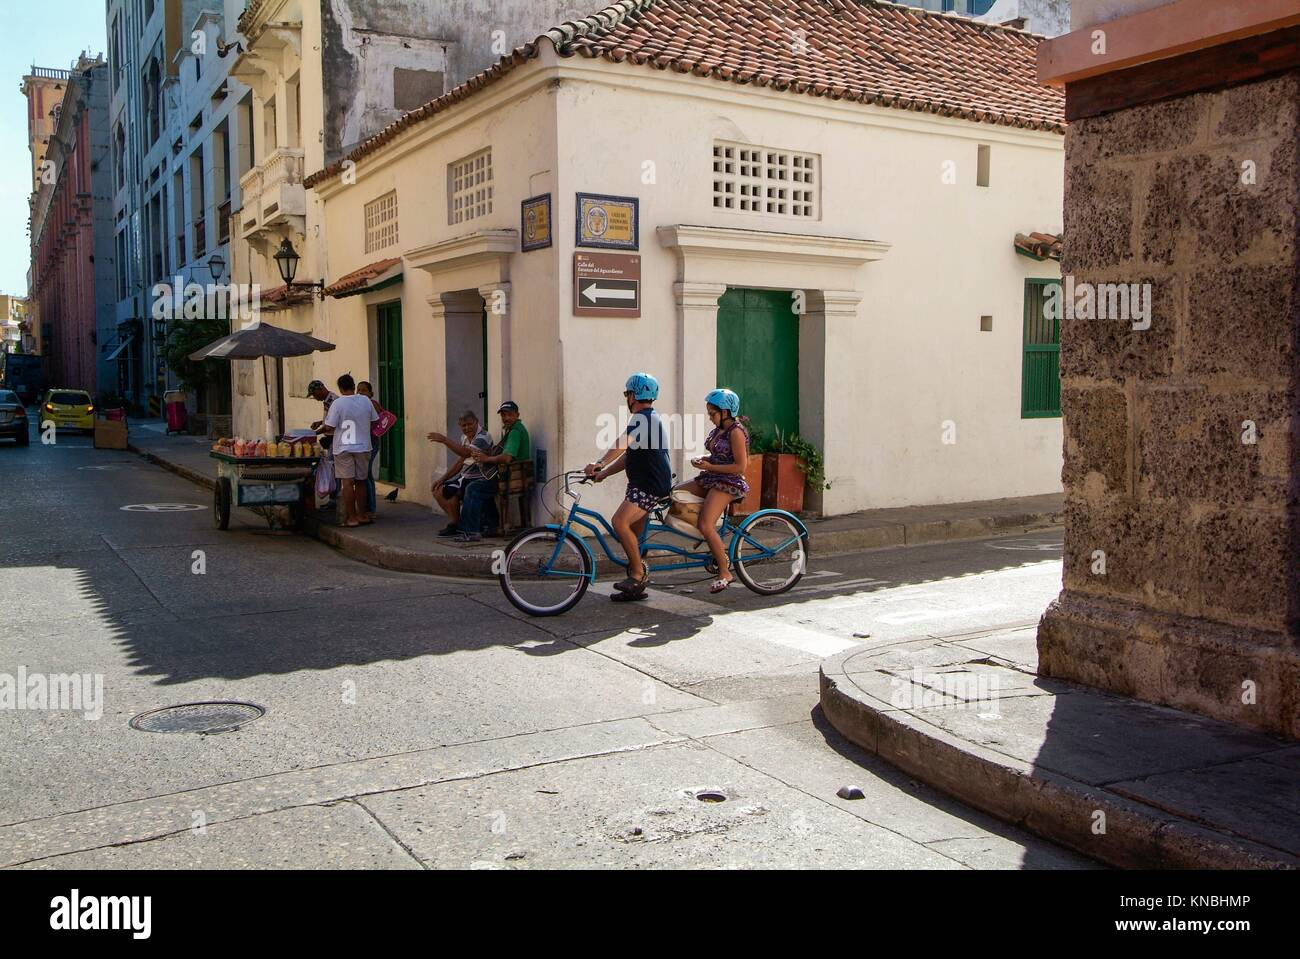 intersection in the old town, Cartagena, Colombia. Stock Photo